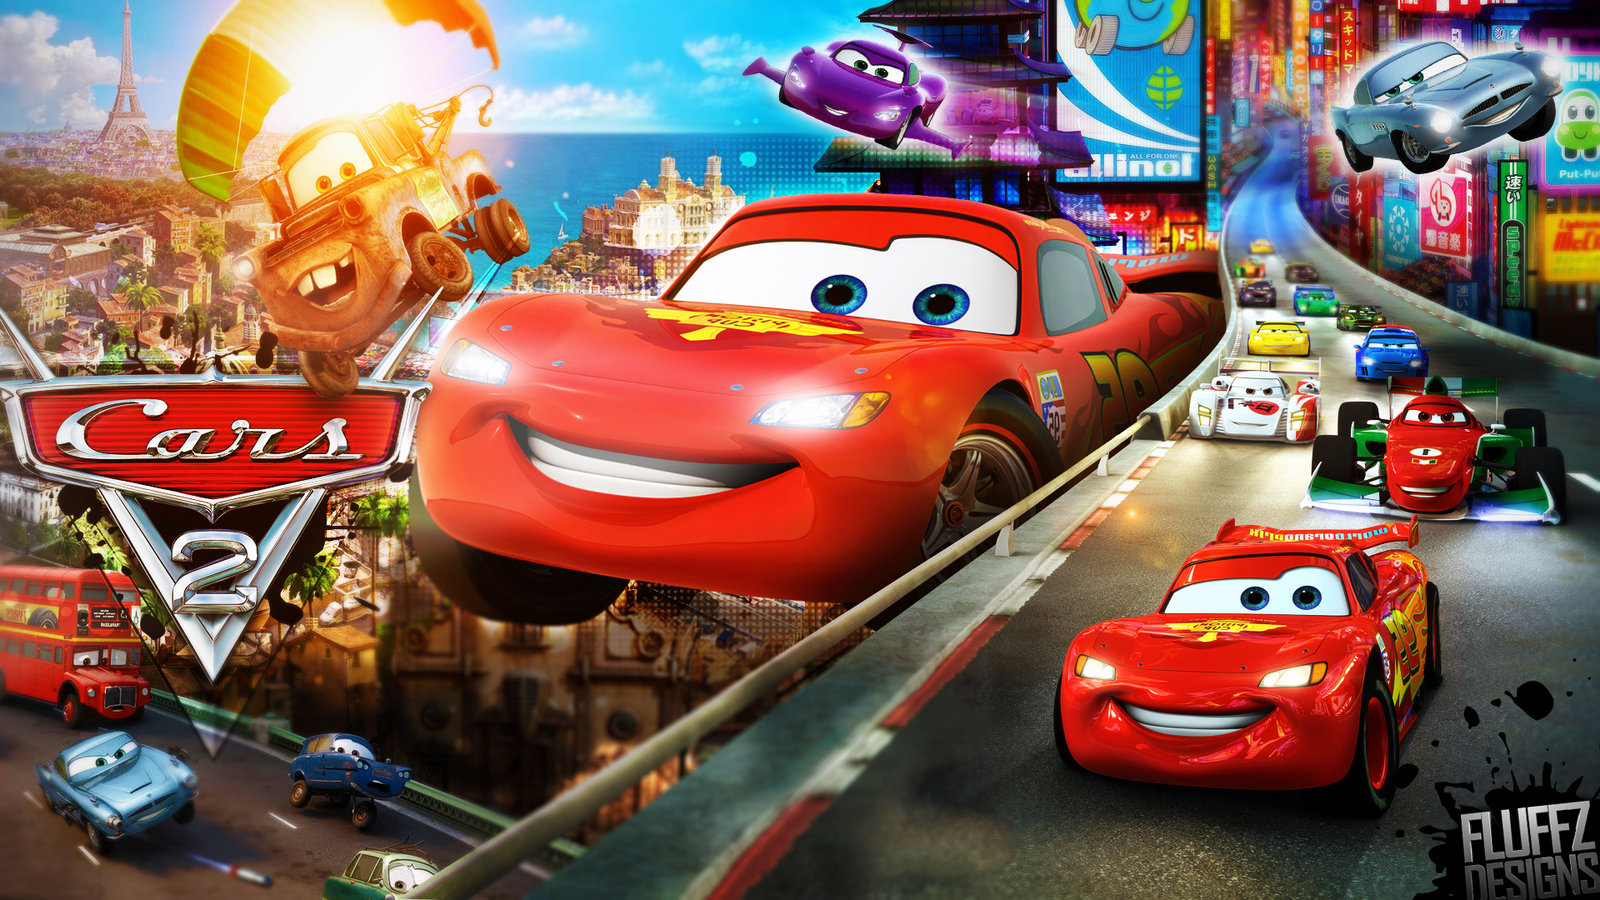 Disney S Cars 2 Wallpaper By Fluffydesignshd D67prz2